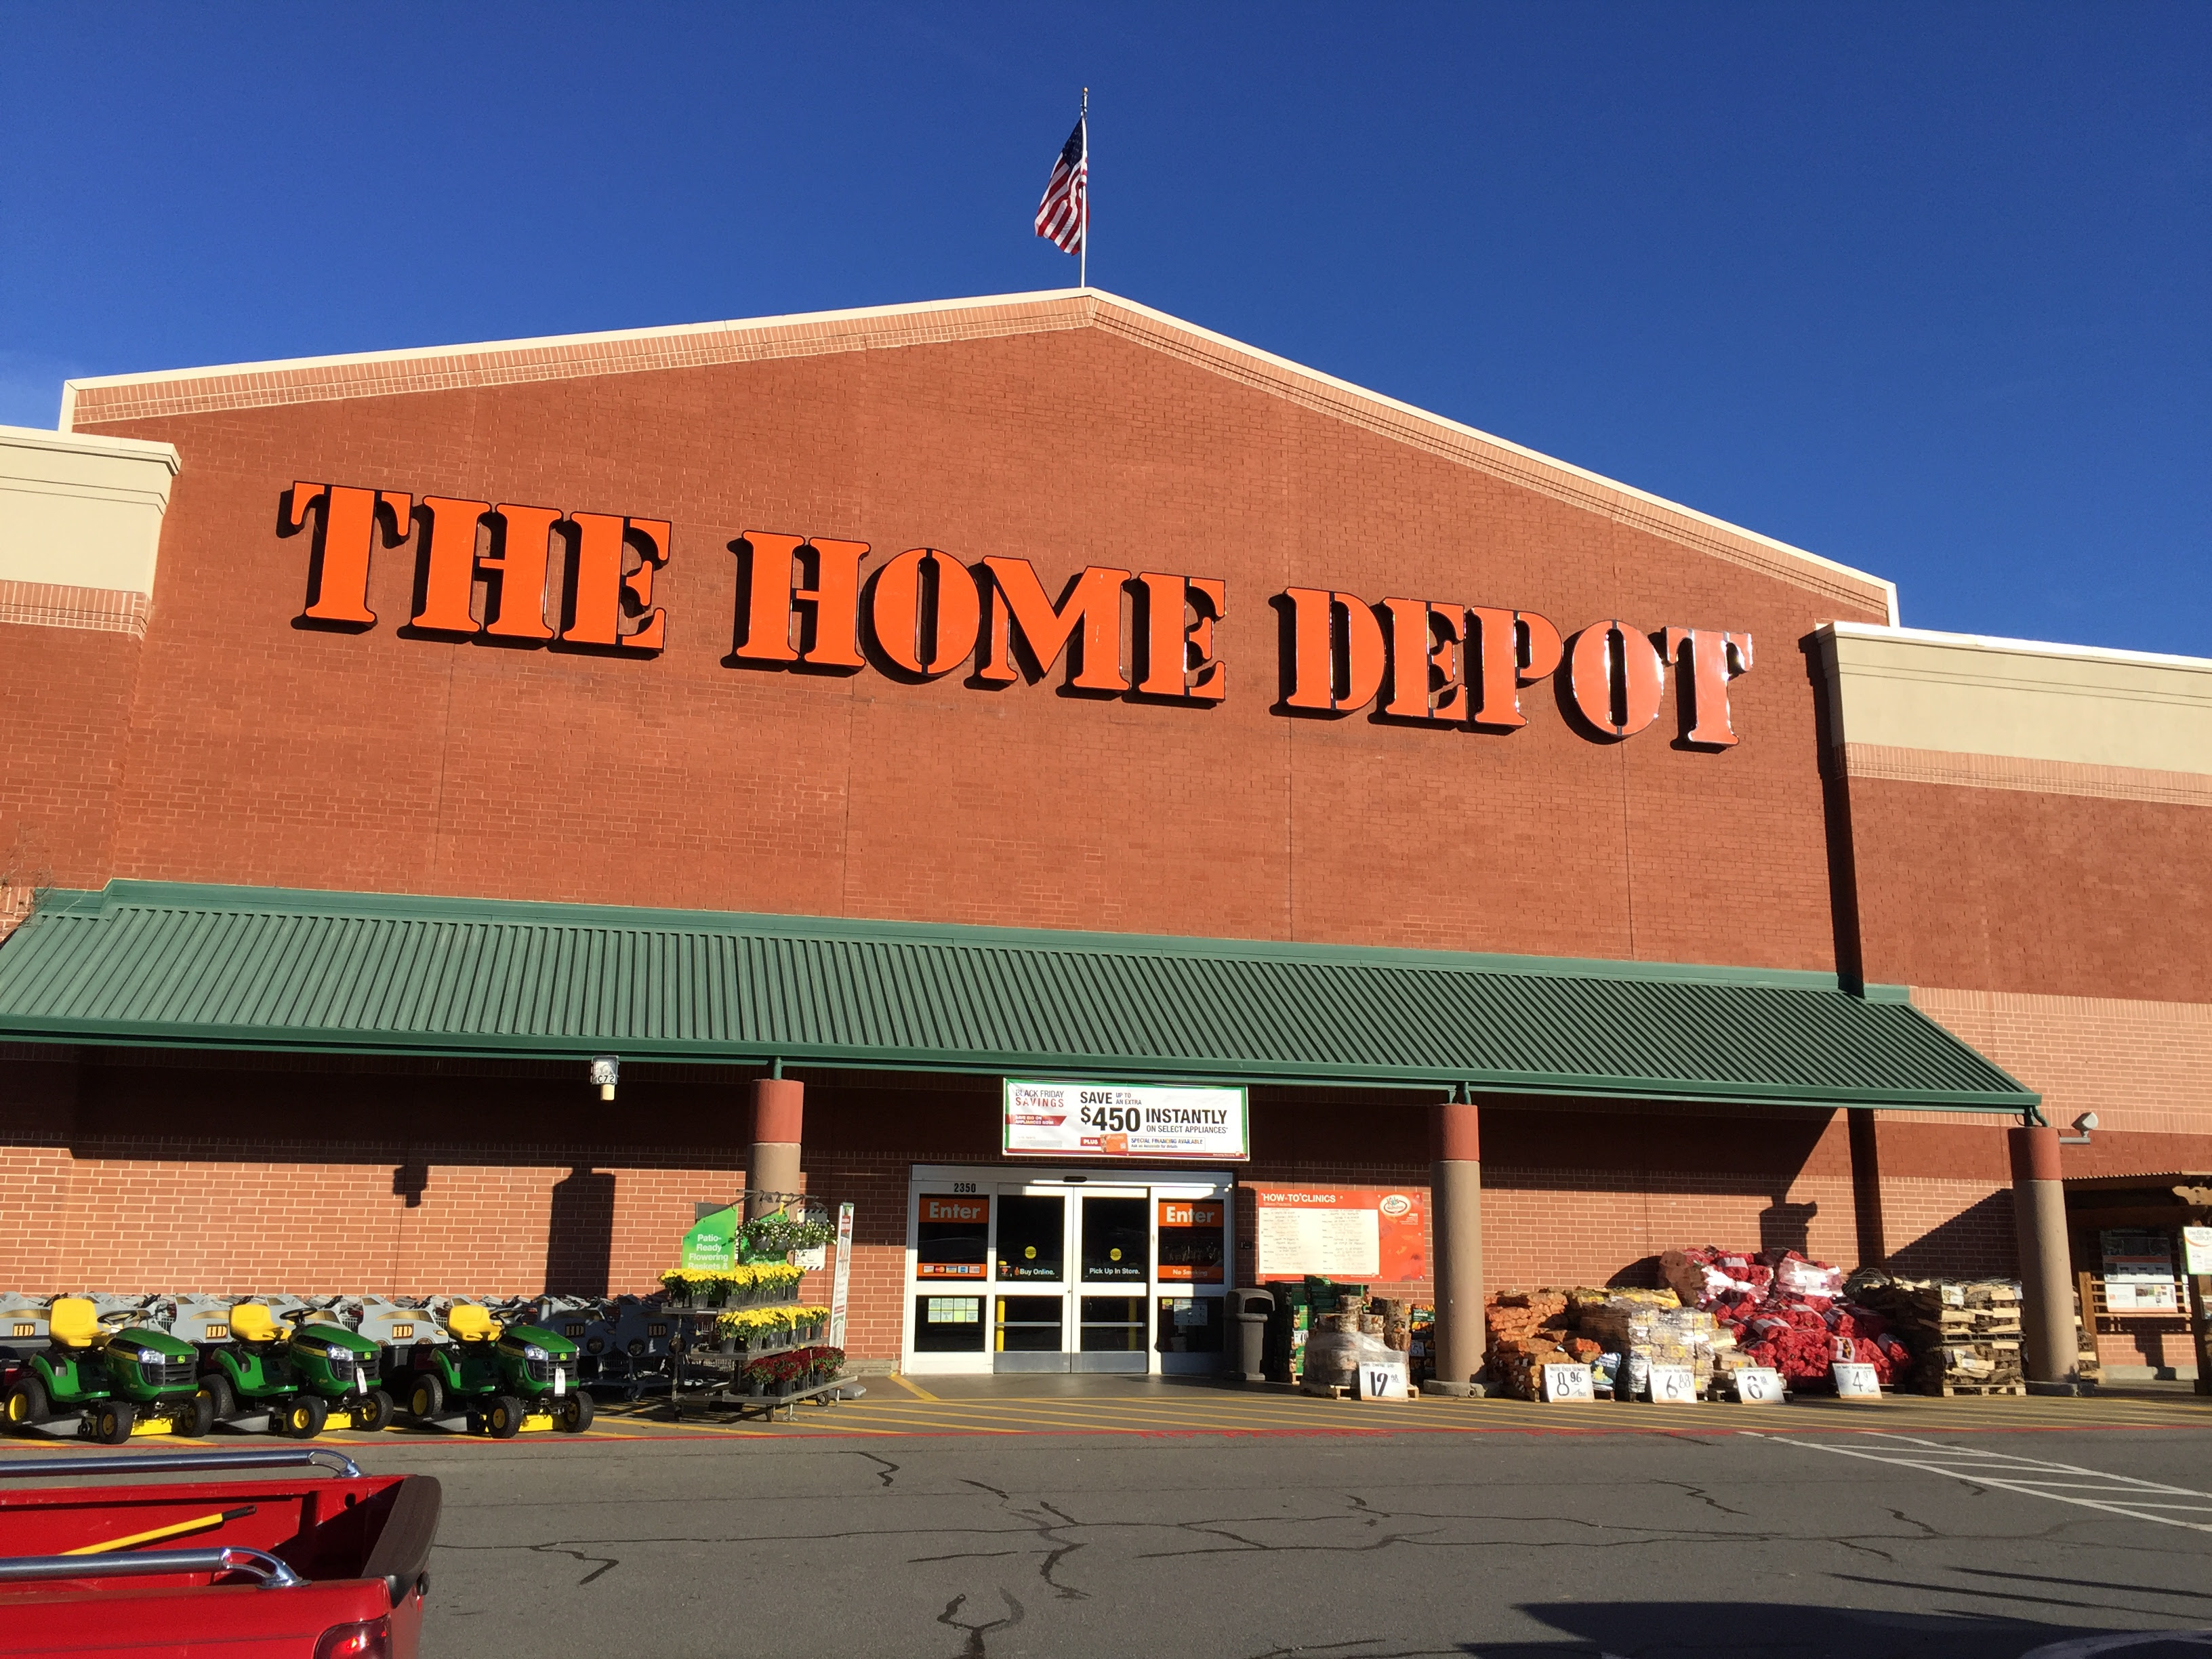 The Home Depot 2350 Dallas Hwy Marietta GA Home Depot MapQuest